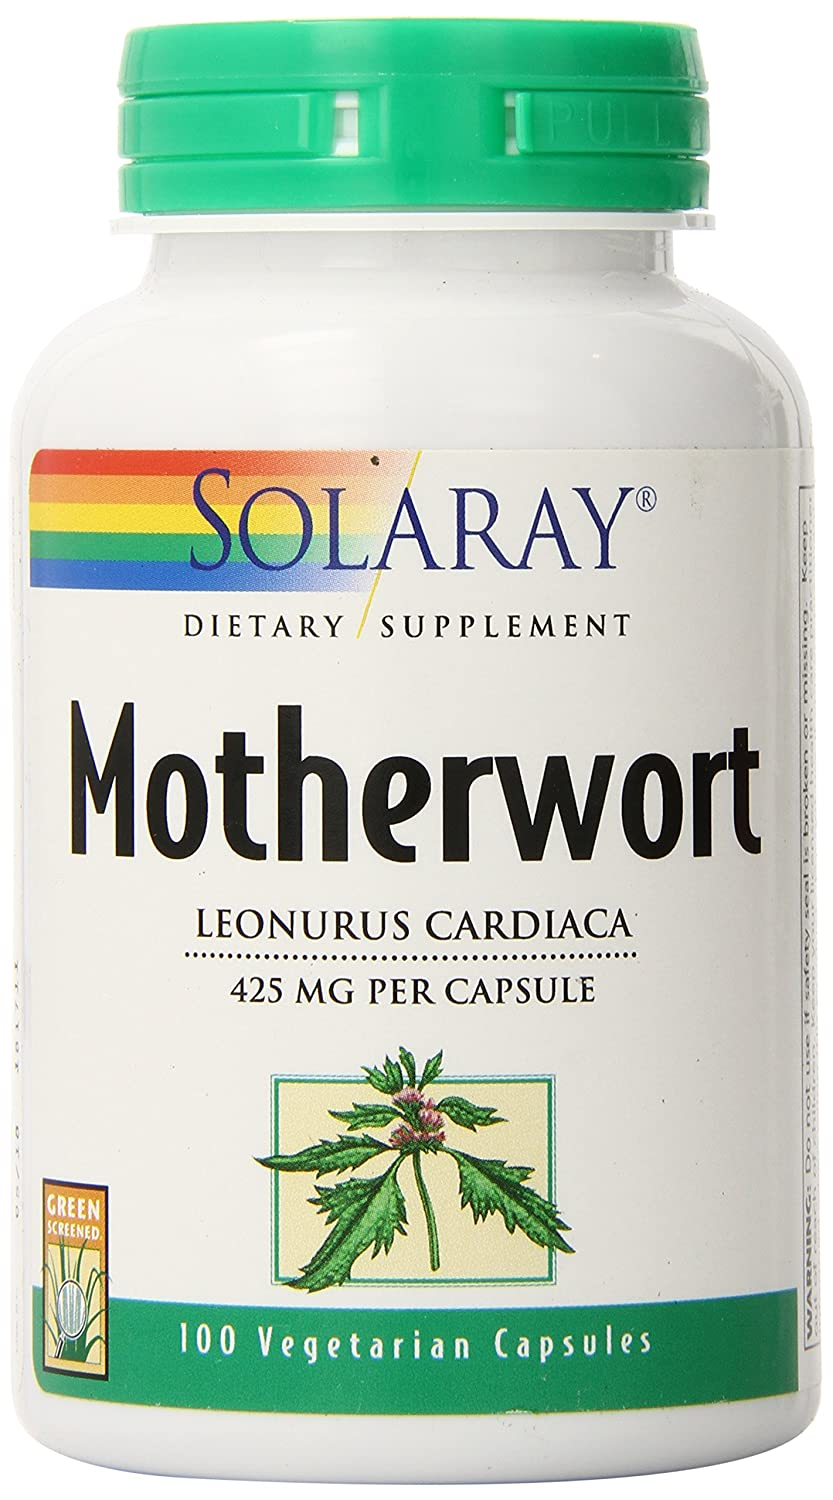 Motherwort in tablets: description and recommendations for use 72